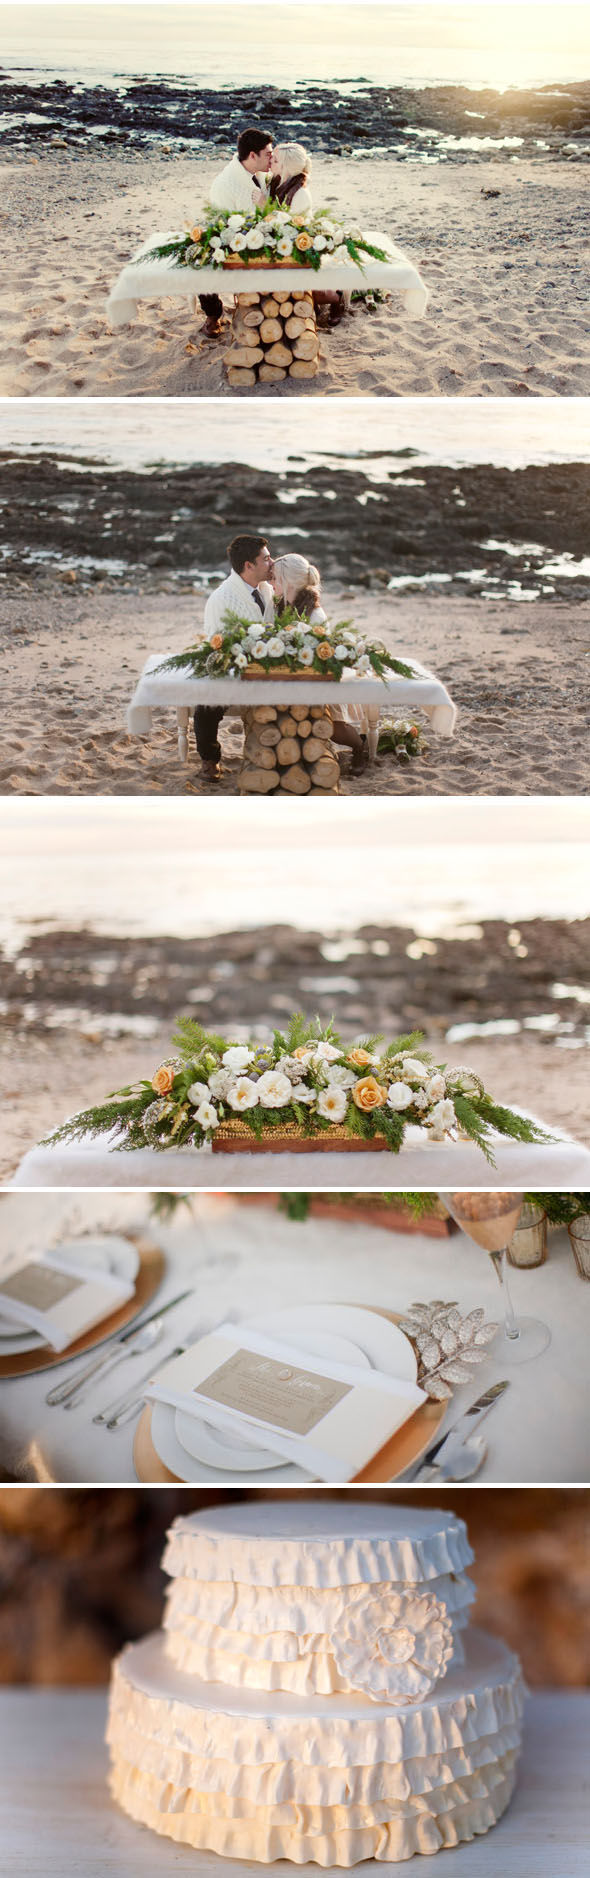 beach winter weddings Christmas on the Beach Engagement Shoot